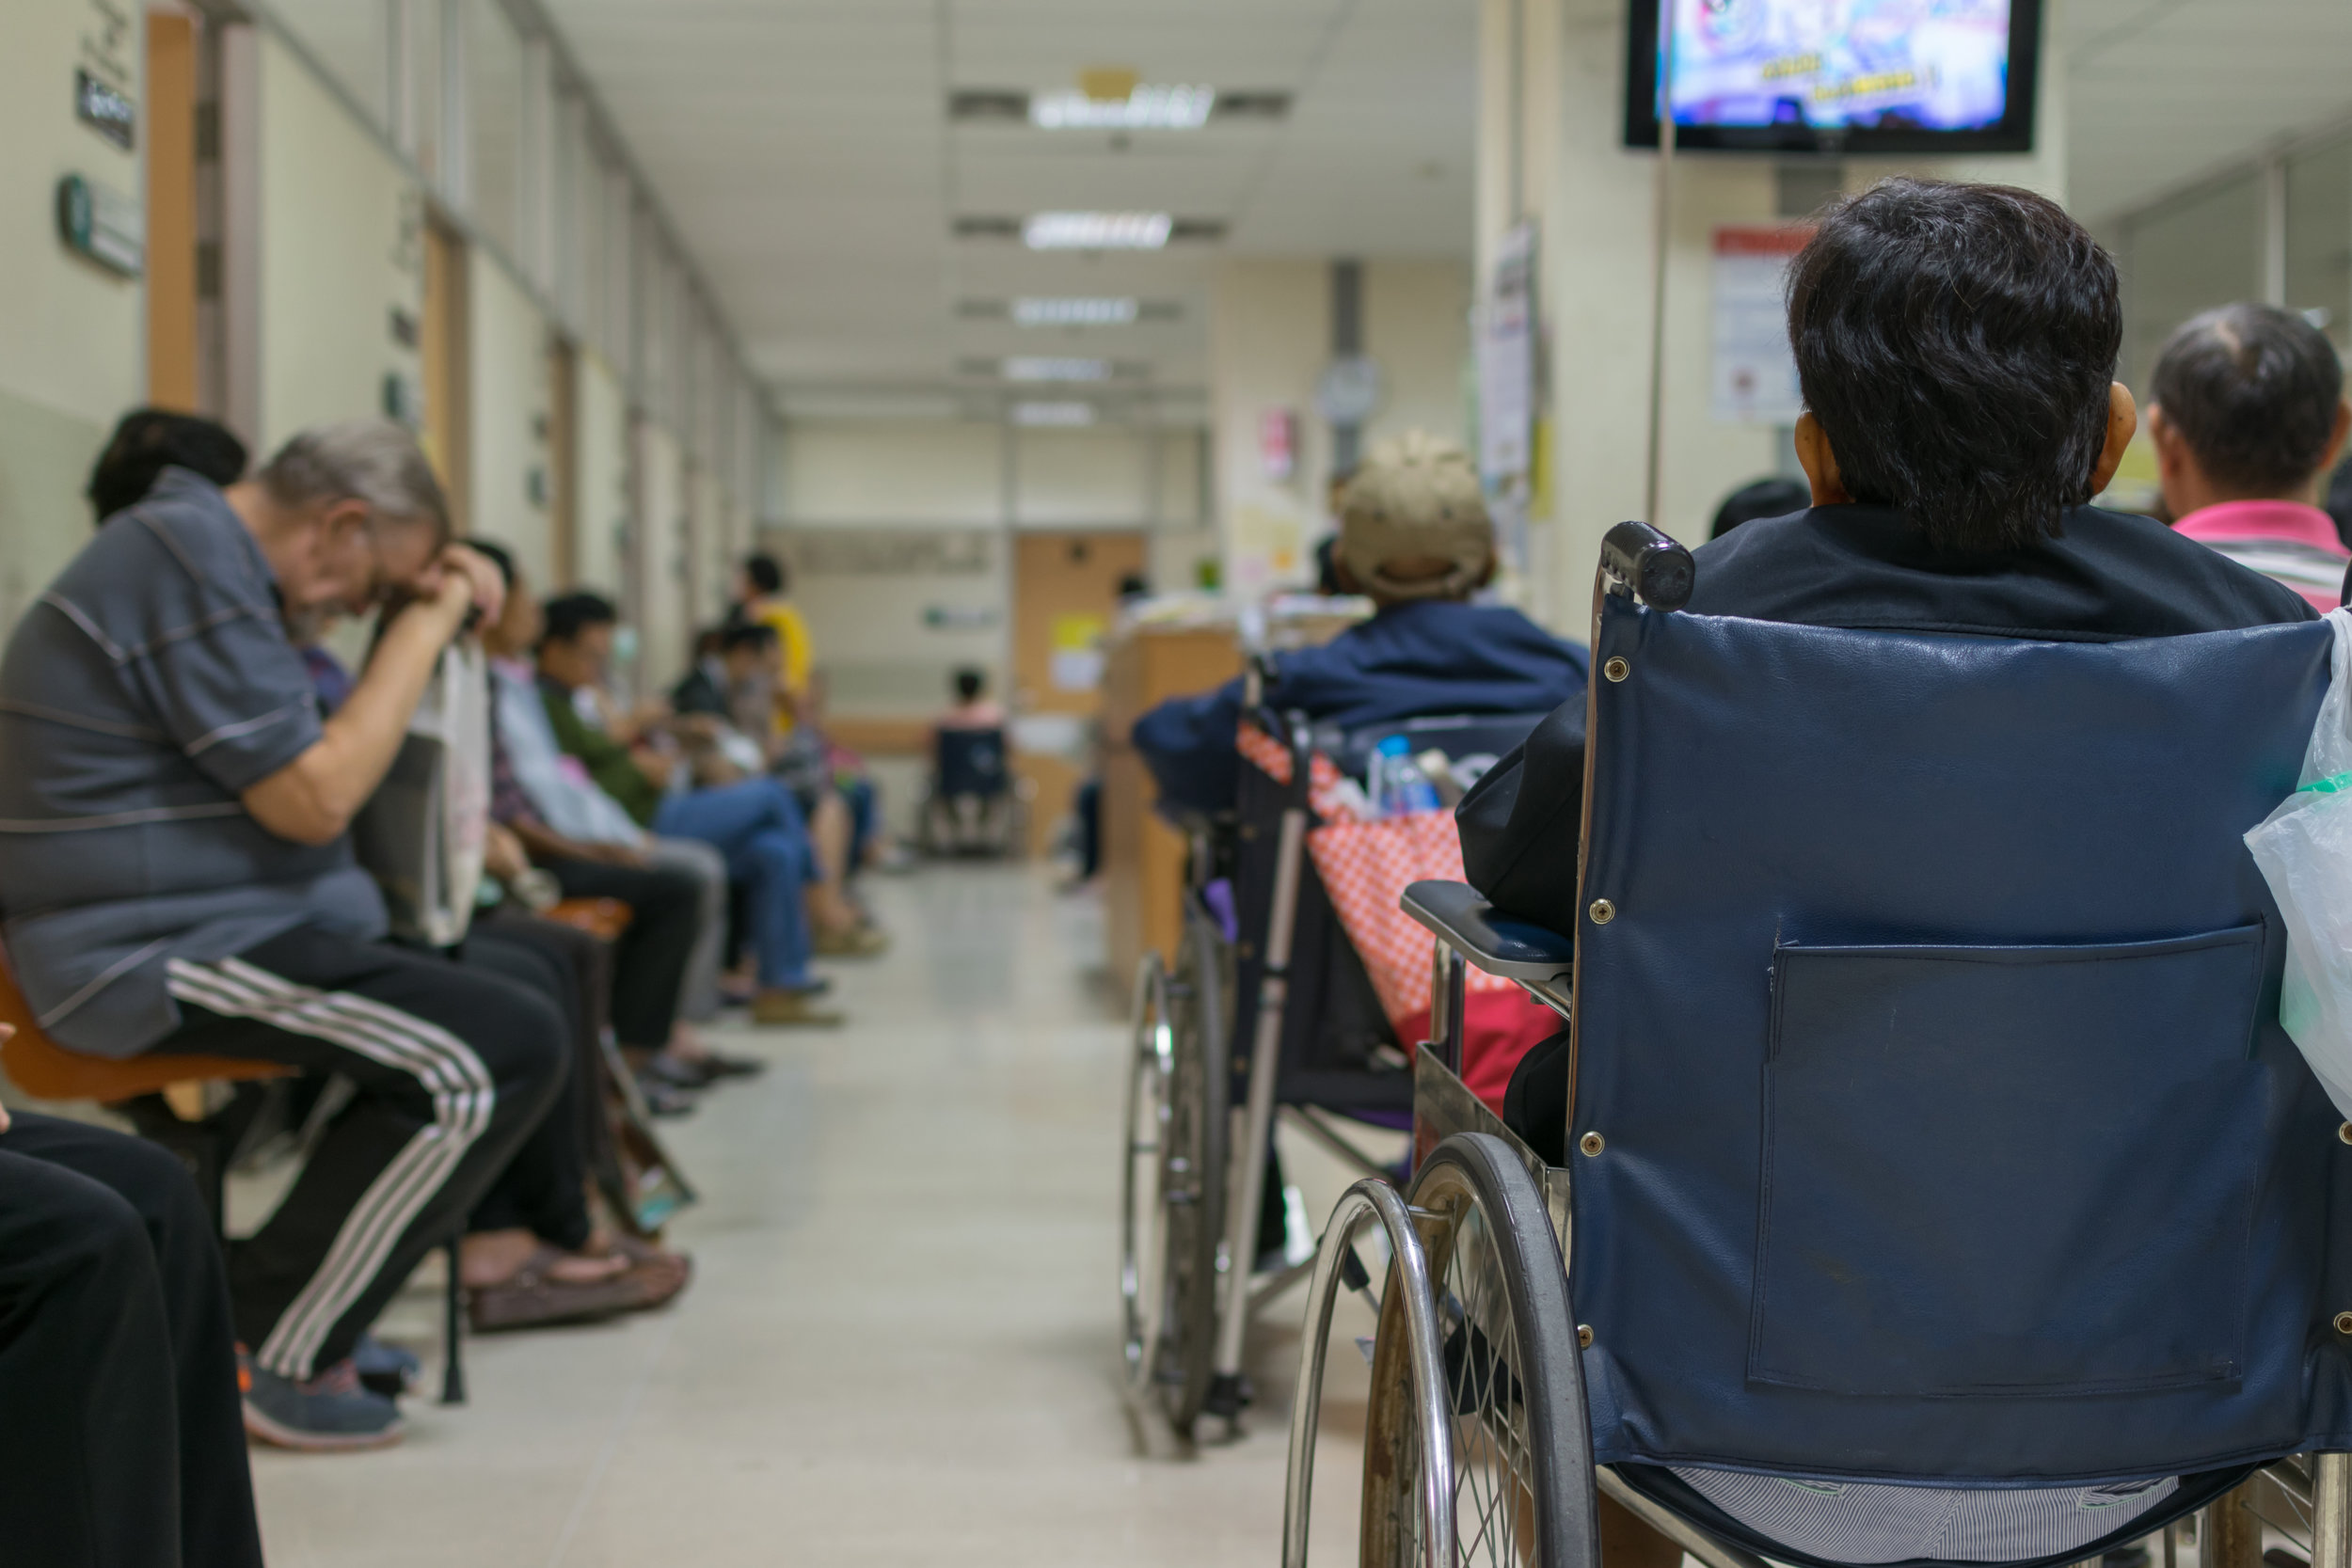 A room packed with tired patients waiting to see their primary care provider